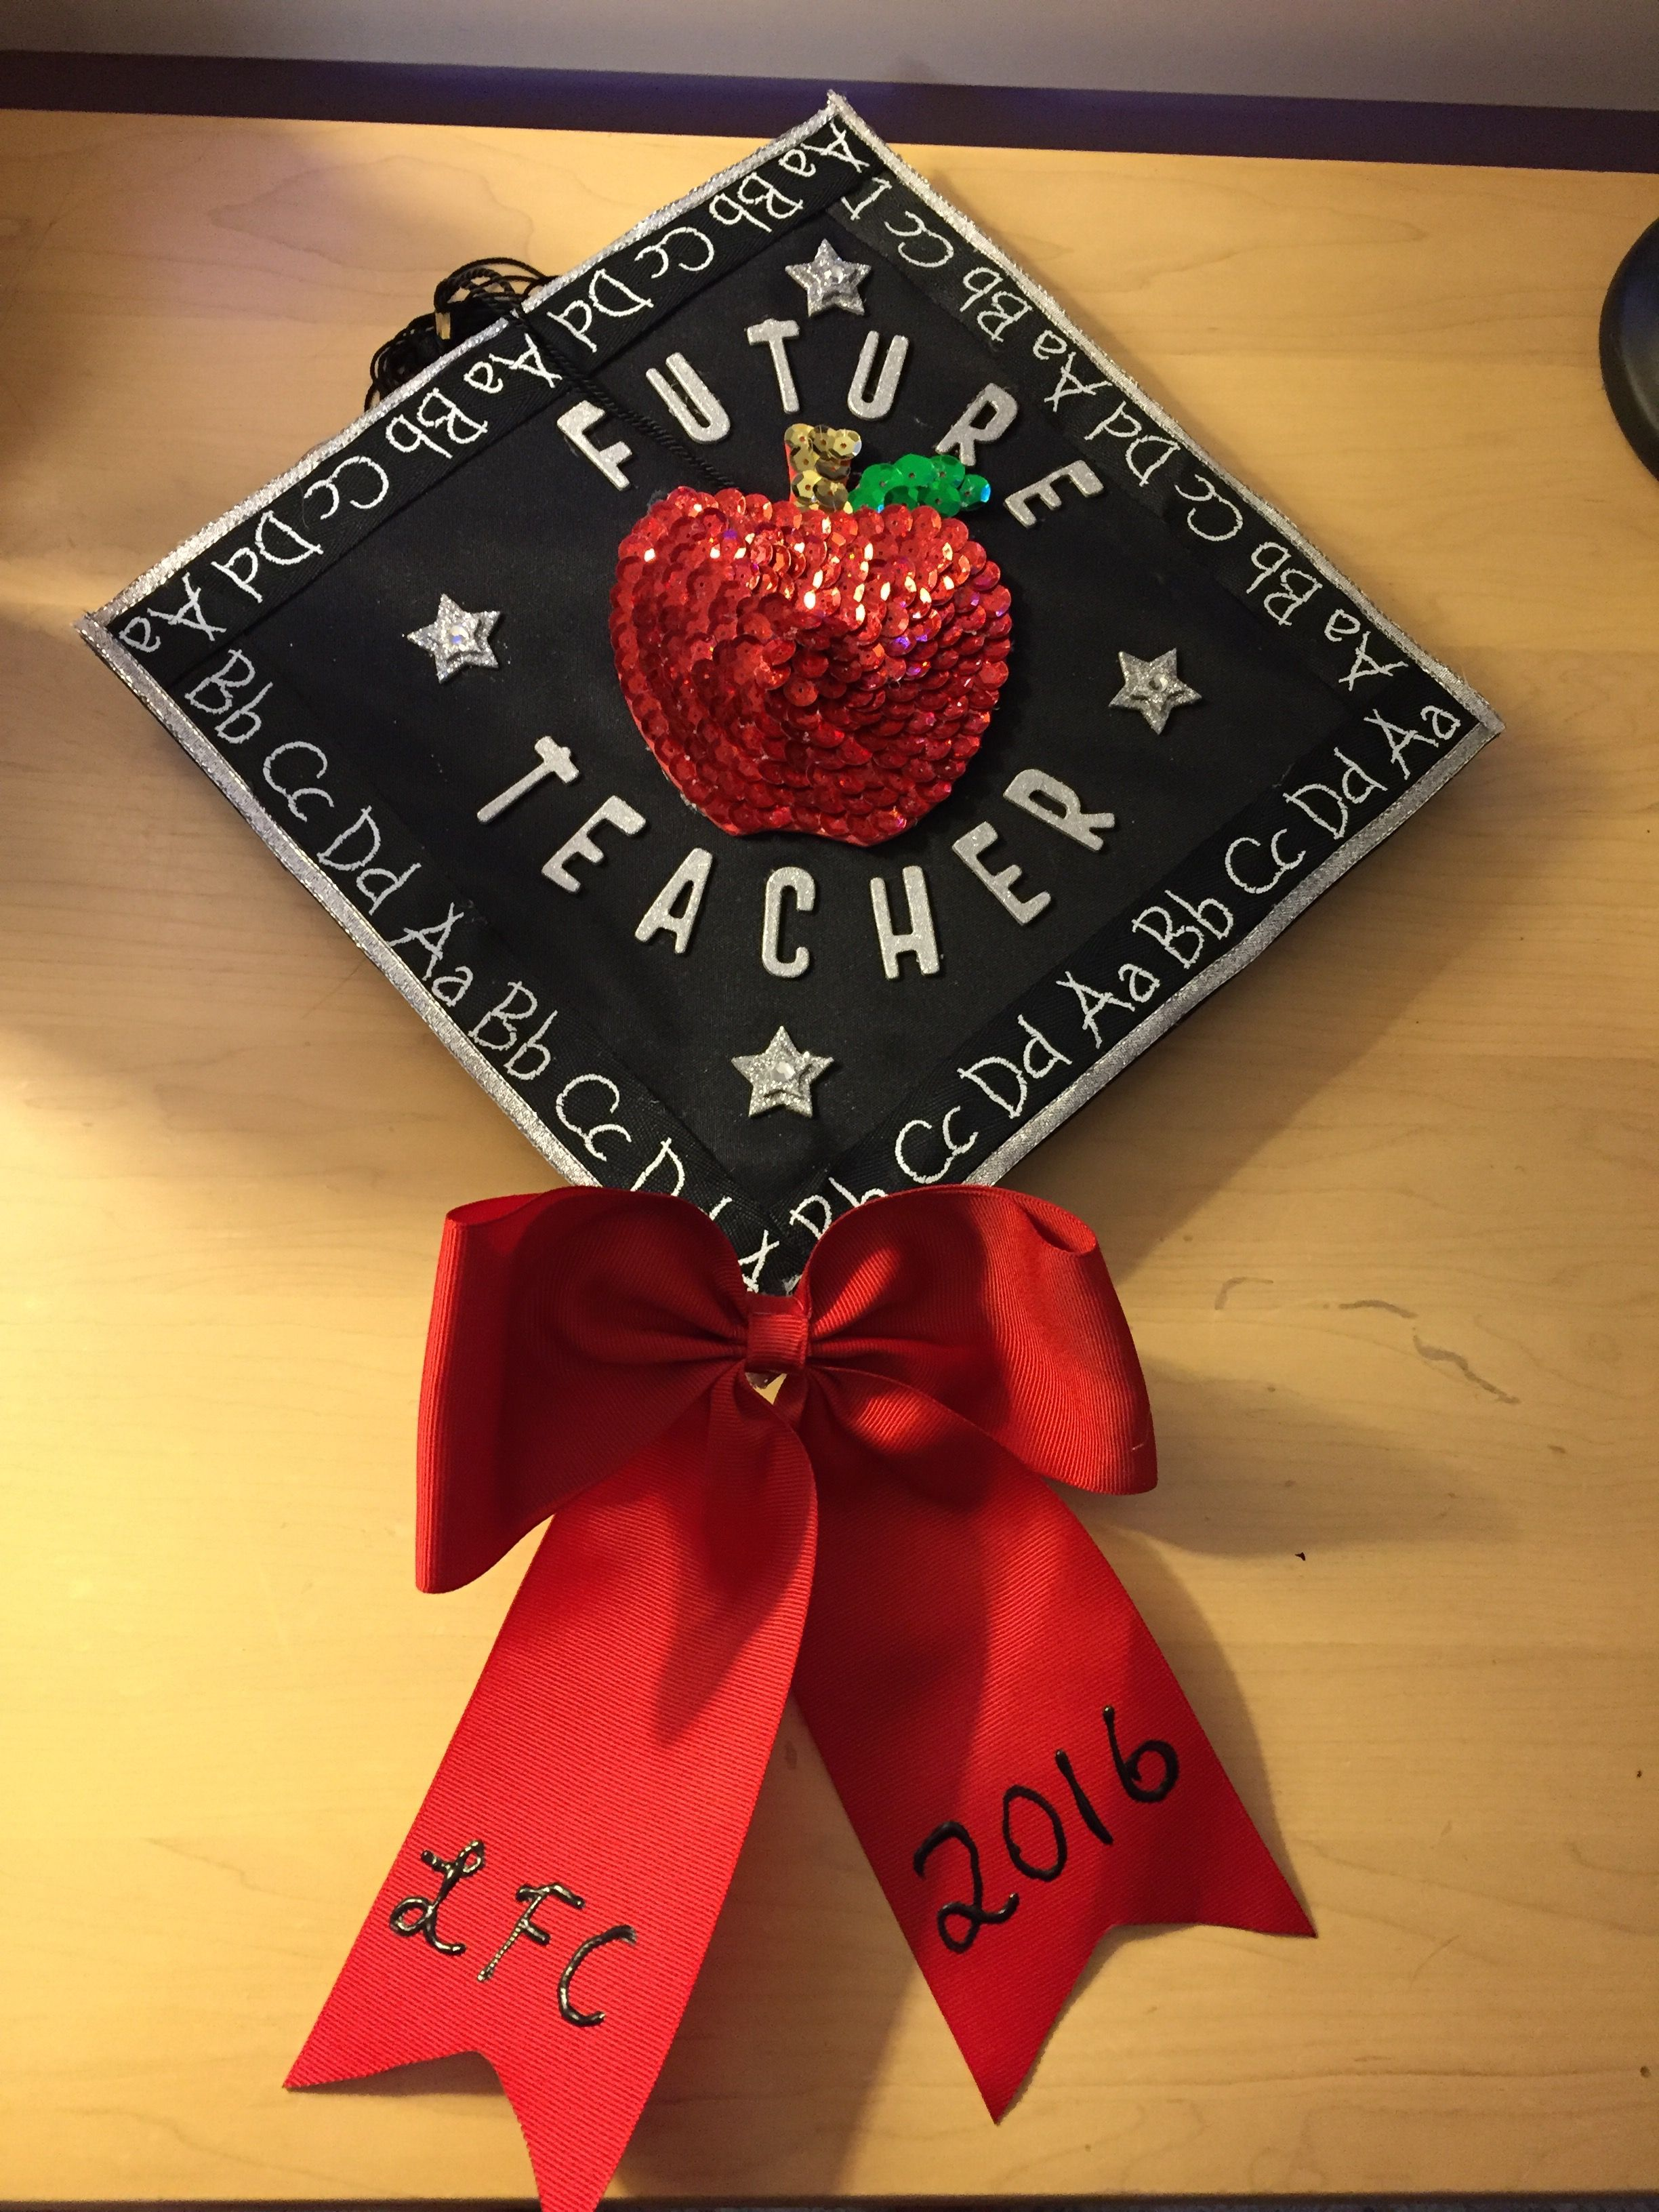 Decorated My Cap For Graduation So Excited To Enter The